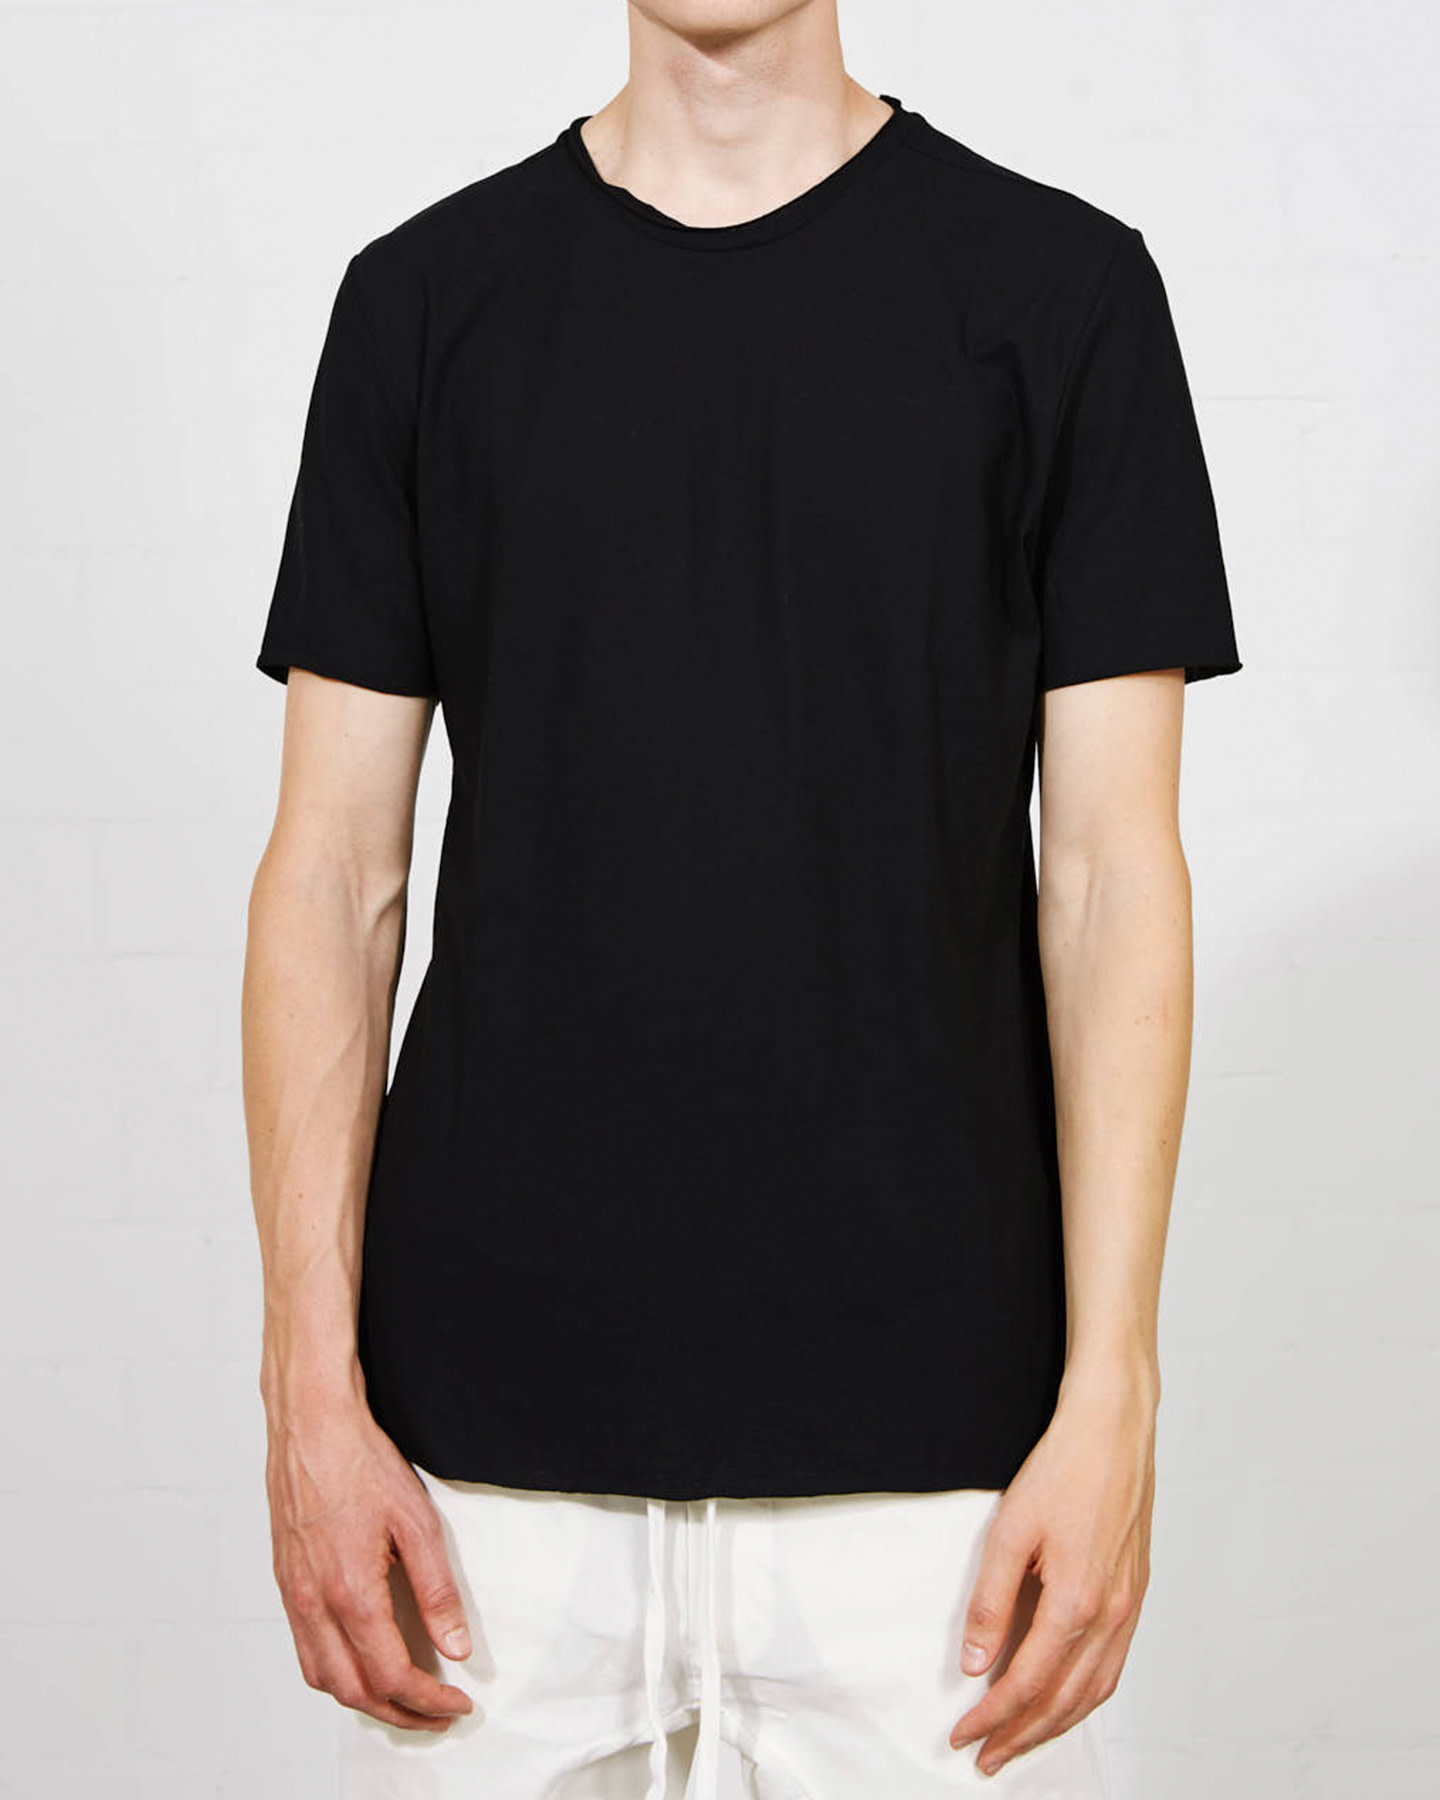 GEO PANEL FITTED COTTON T-SHIRT